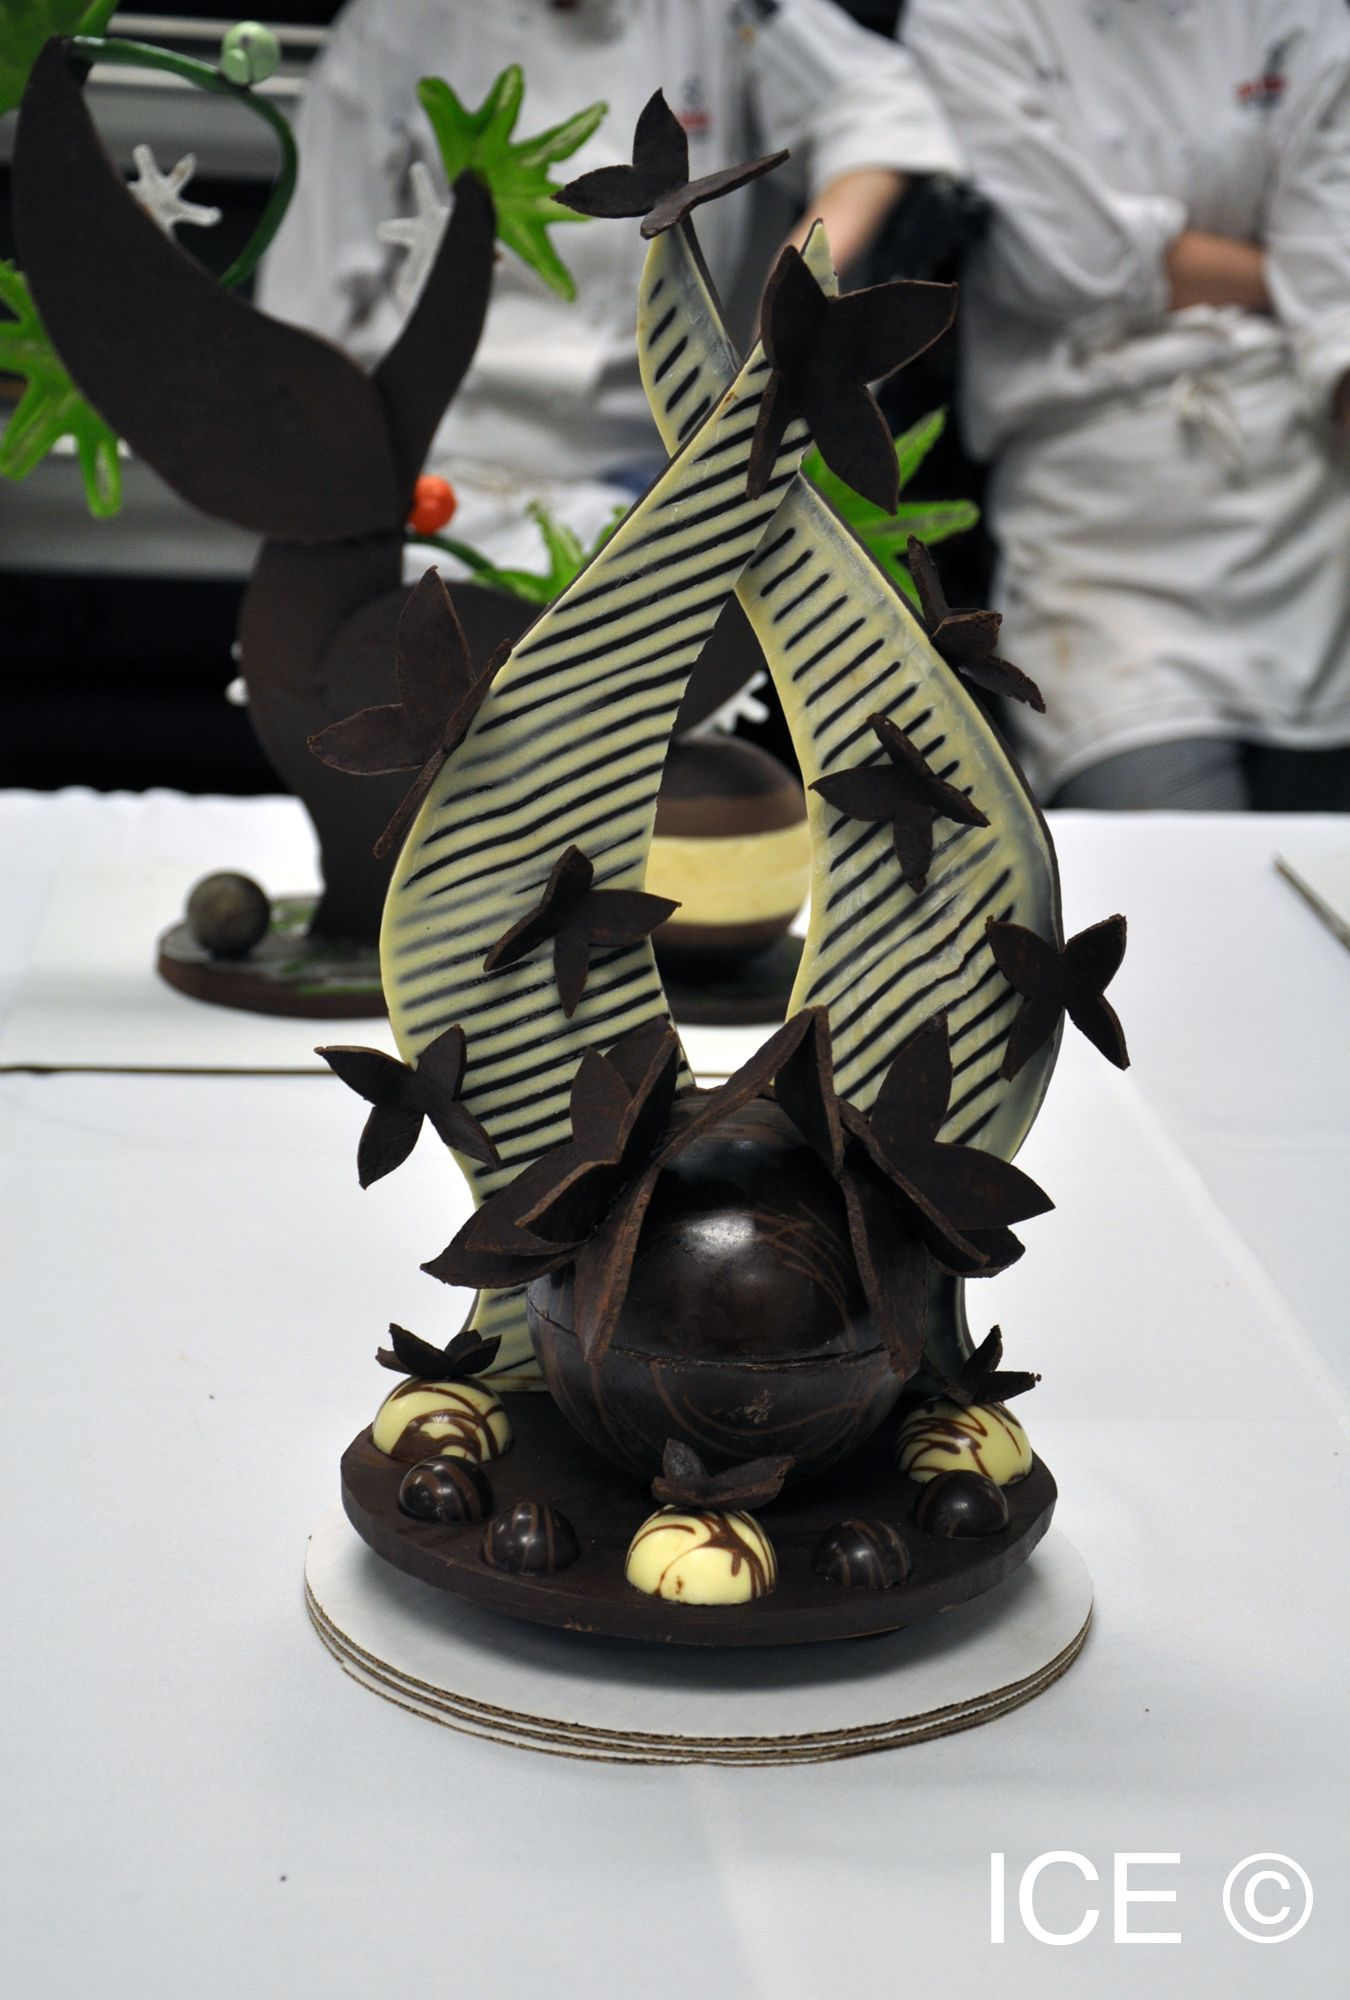 A chocolate showpiece made in an ICE Pastry & Baking Arts